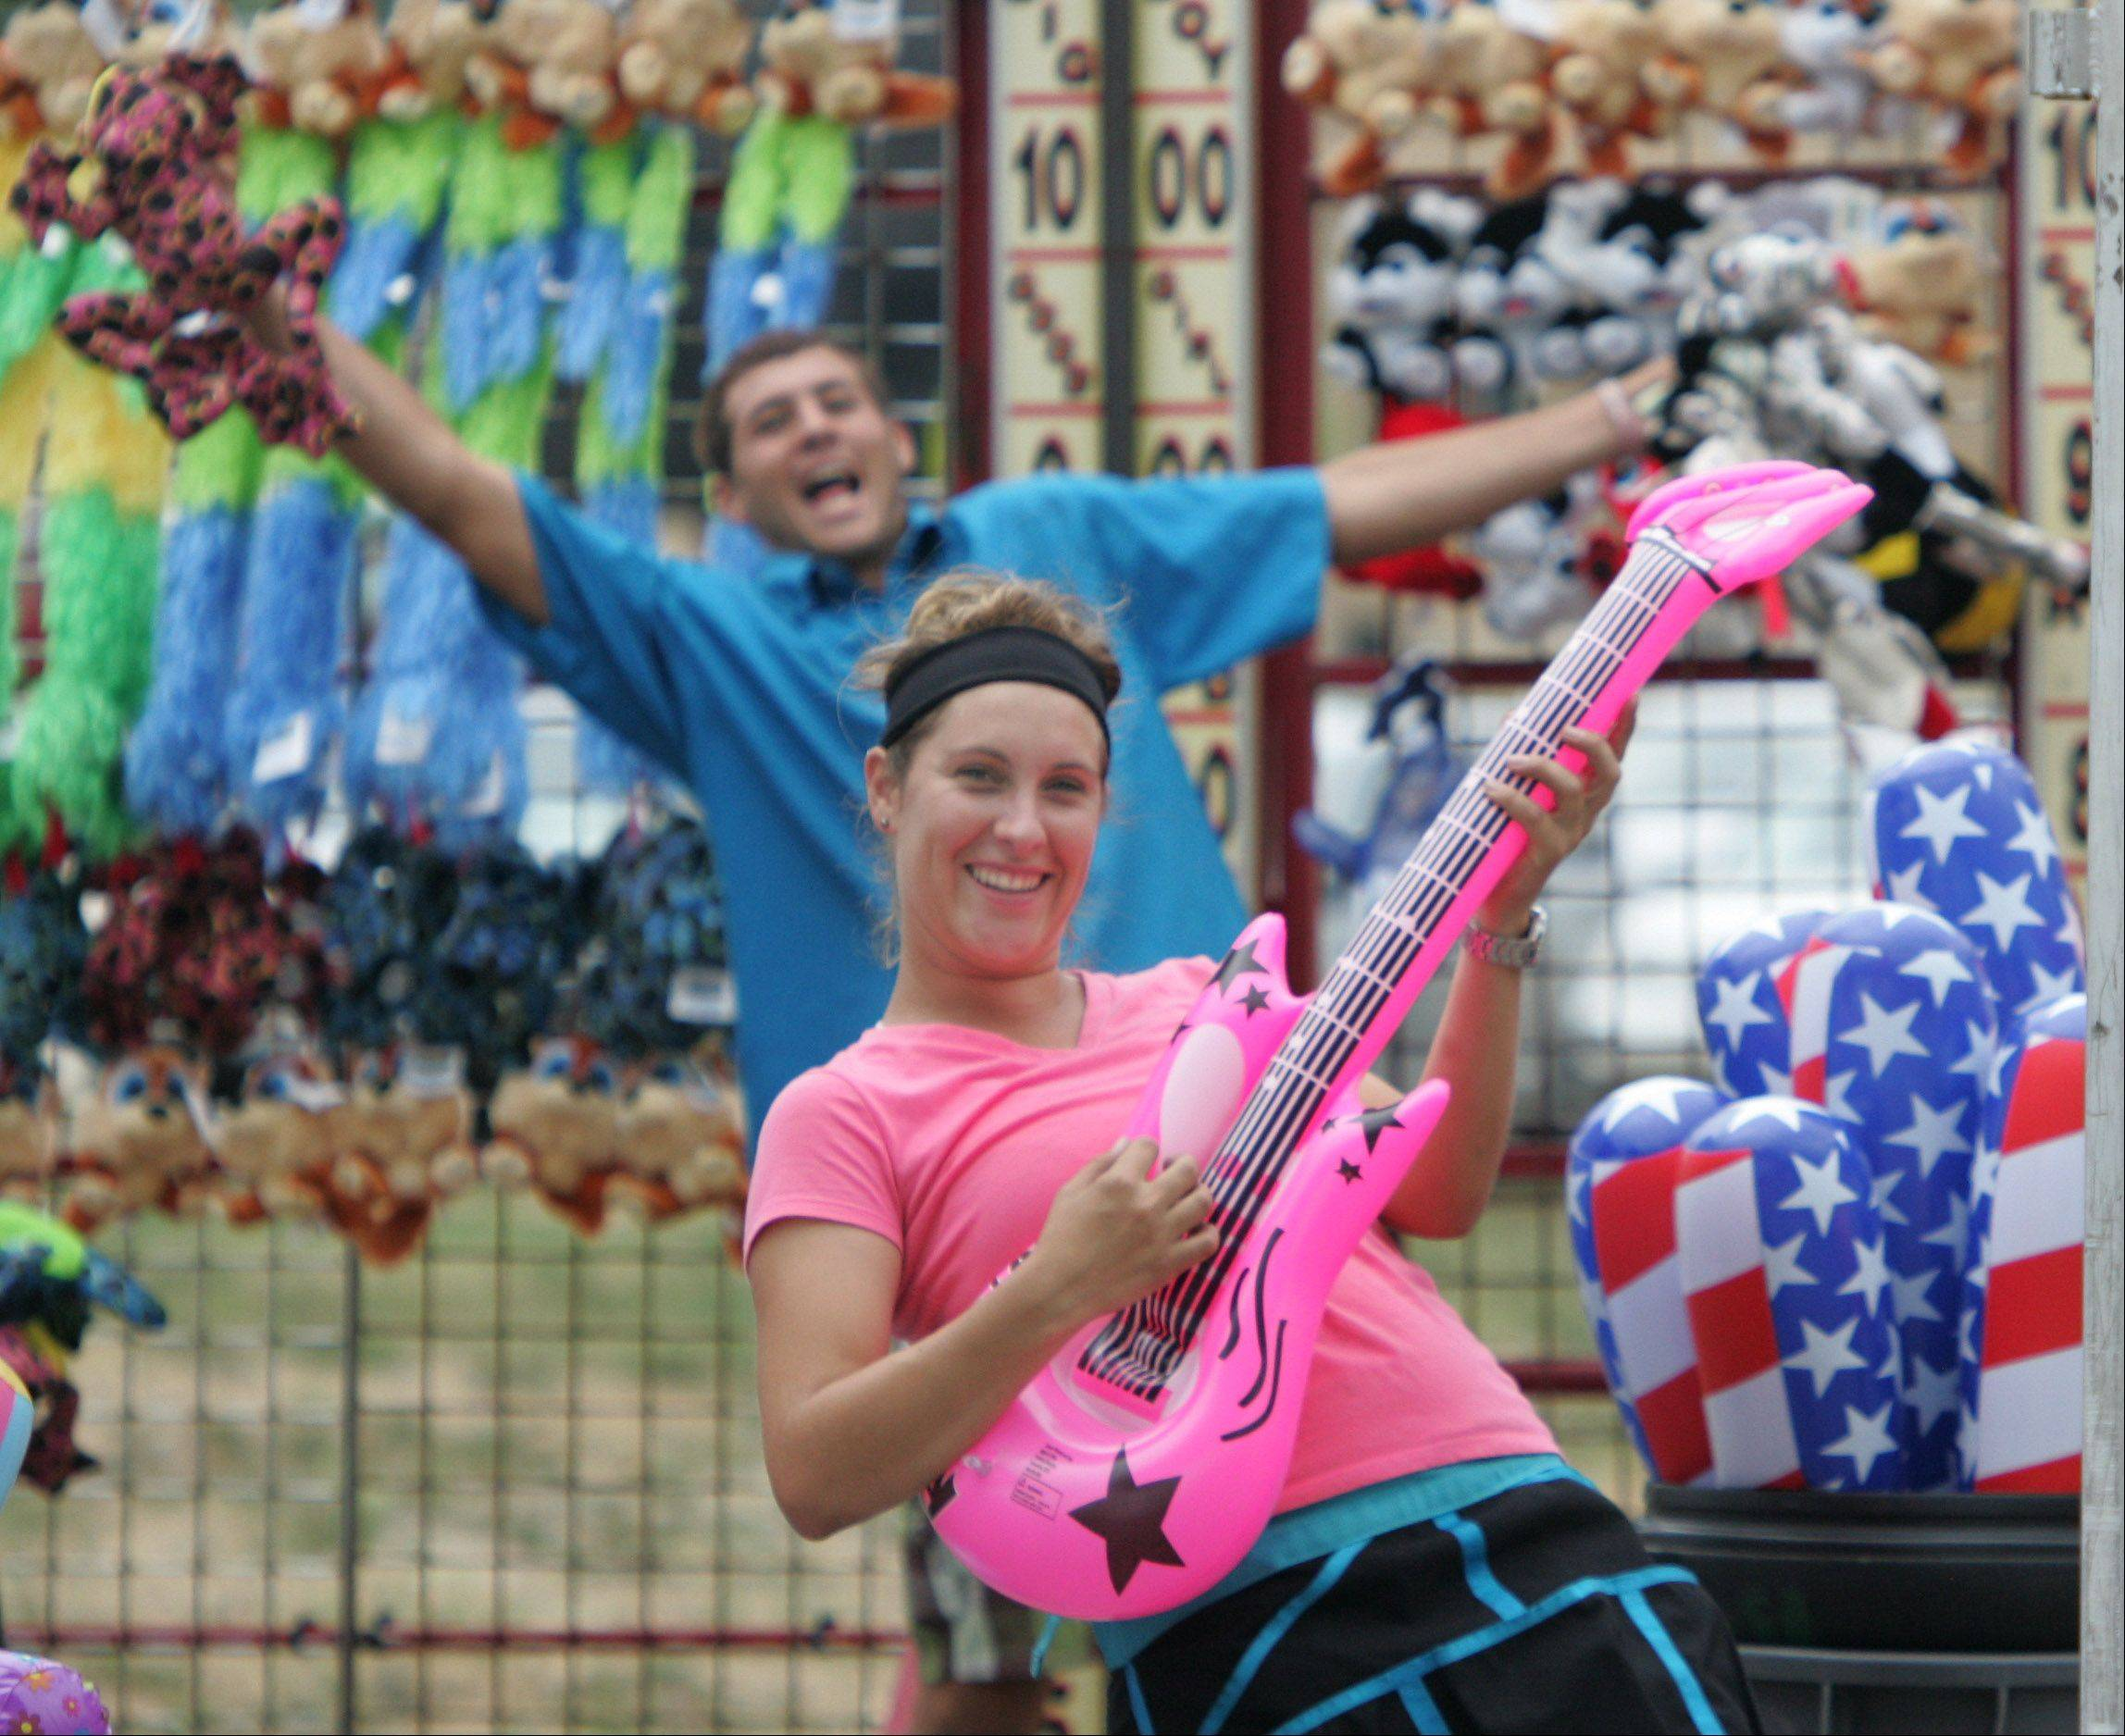 Lizanda Van Rooyen, of Alpine Amusement Co., plays air guitar while J.B. DuPlooy goofs off behind her as they try to attract customers to the Hammer Slammer game during the first day of Antioch Taste of Summer Fest Thursday. The festival continues through Sunday with live music, food and carnival rides.